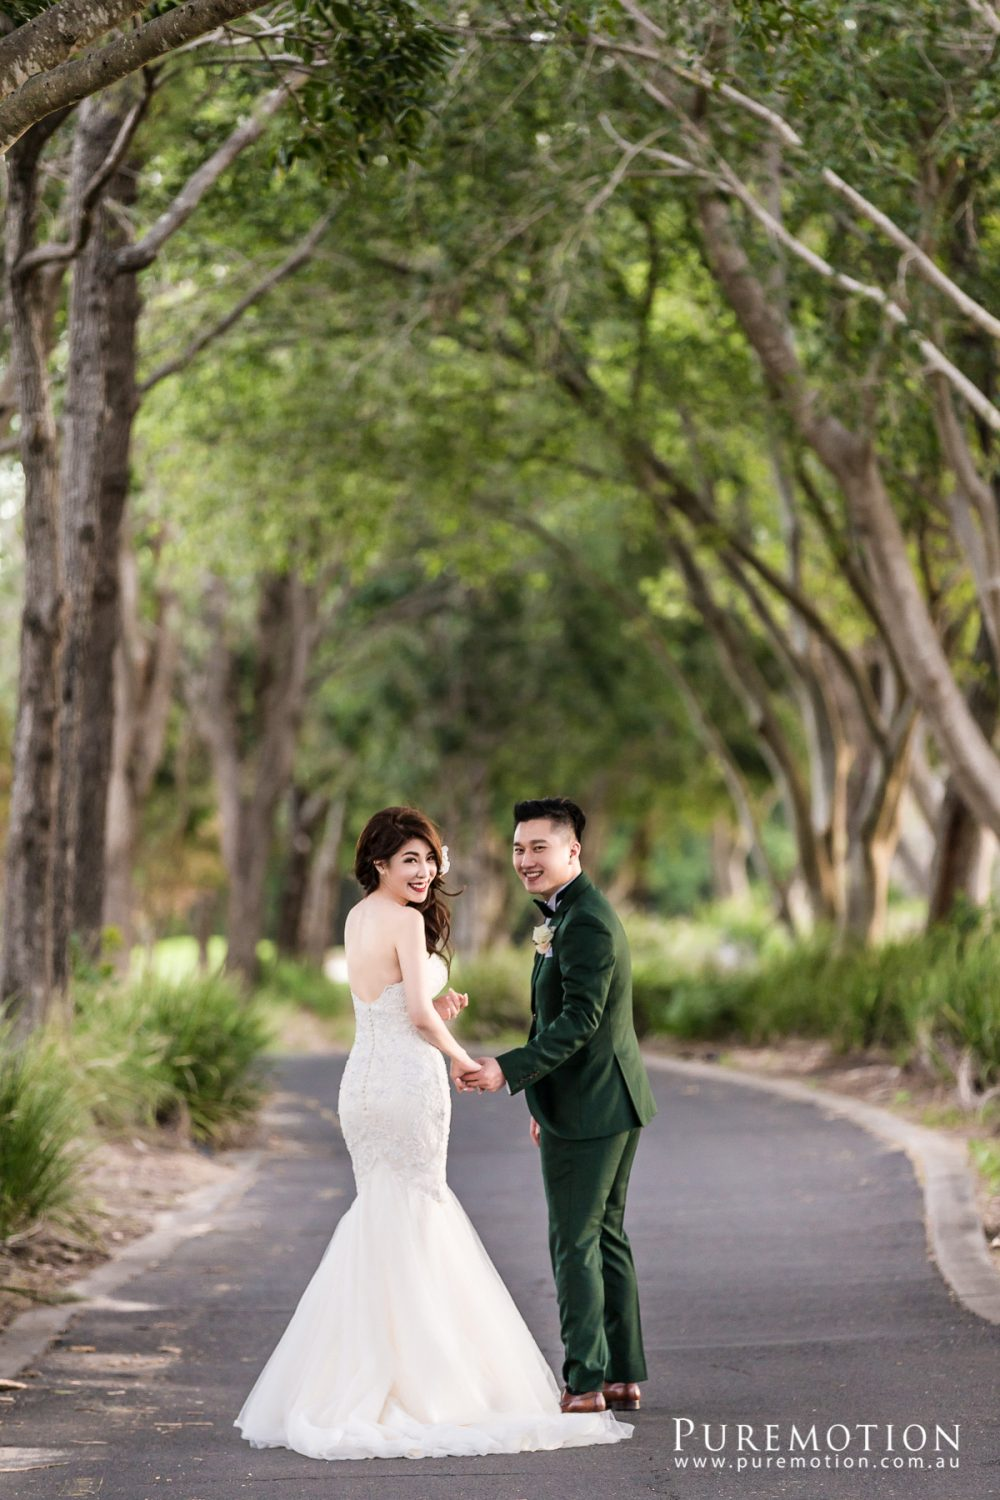 170401 Puremotion Wedding Photography Links Hope Island KateGary-0083